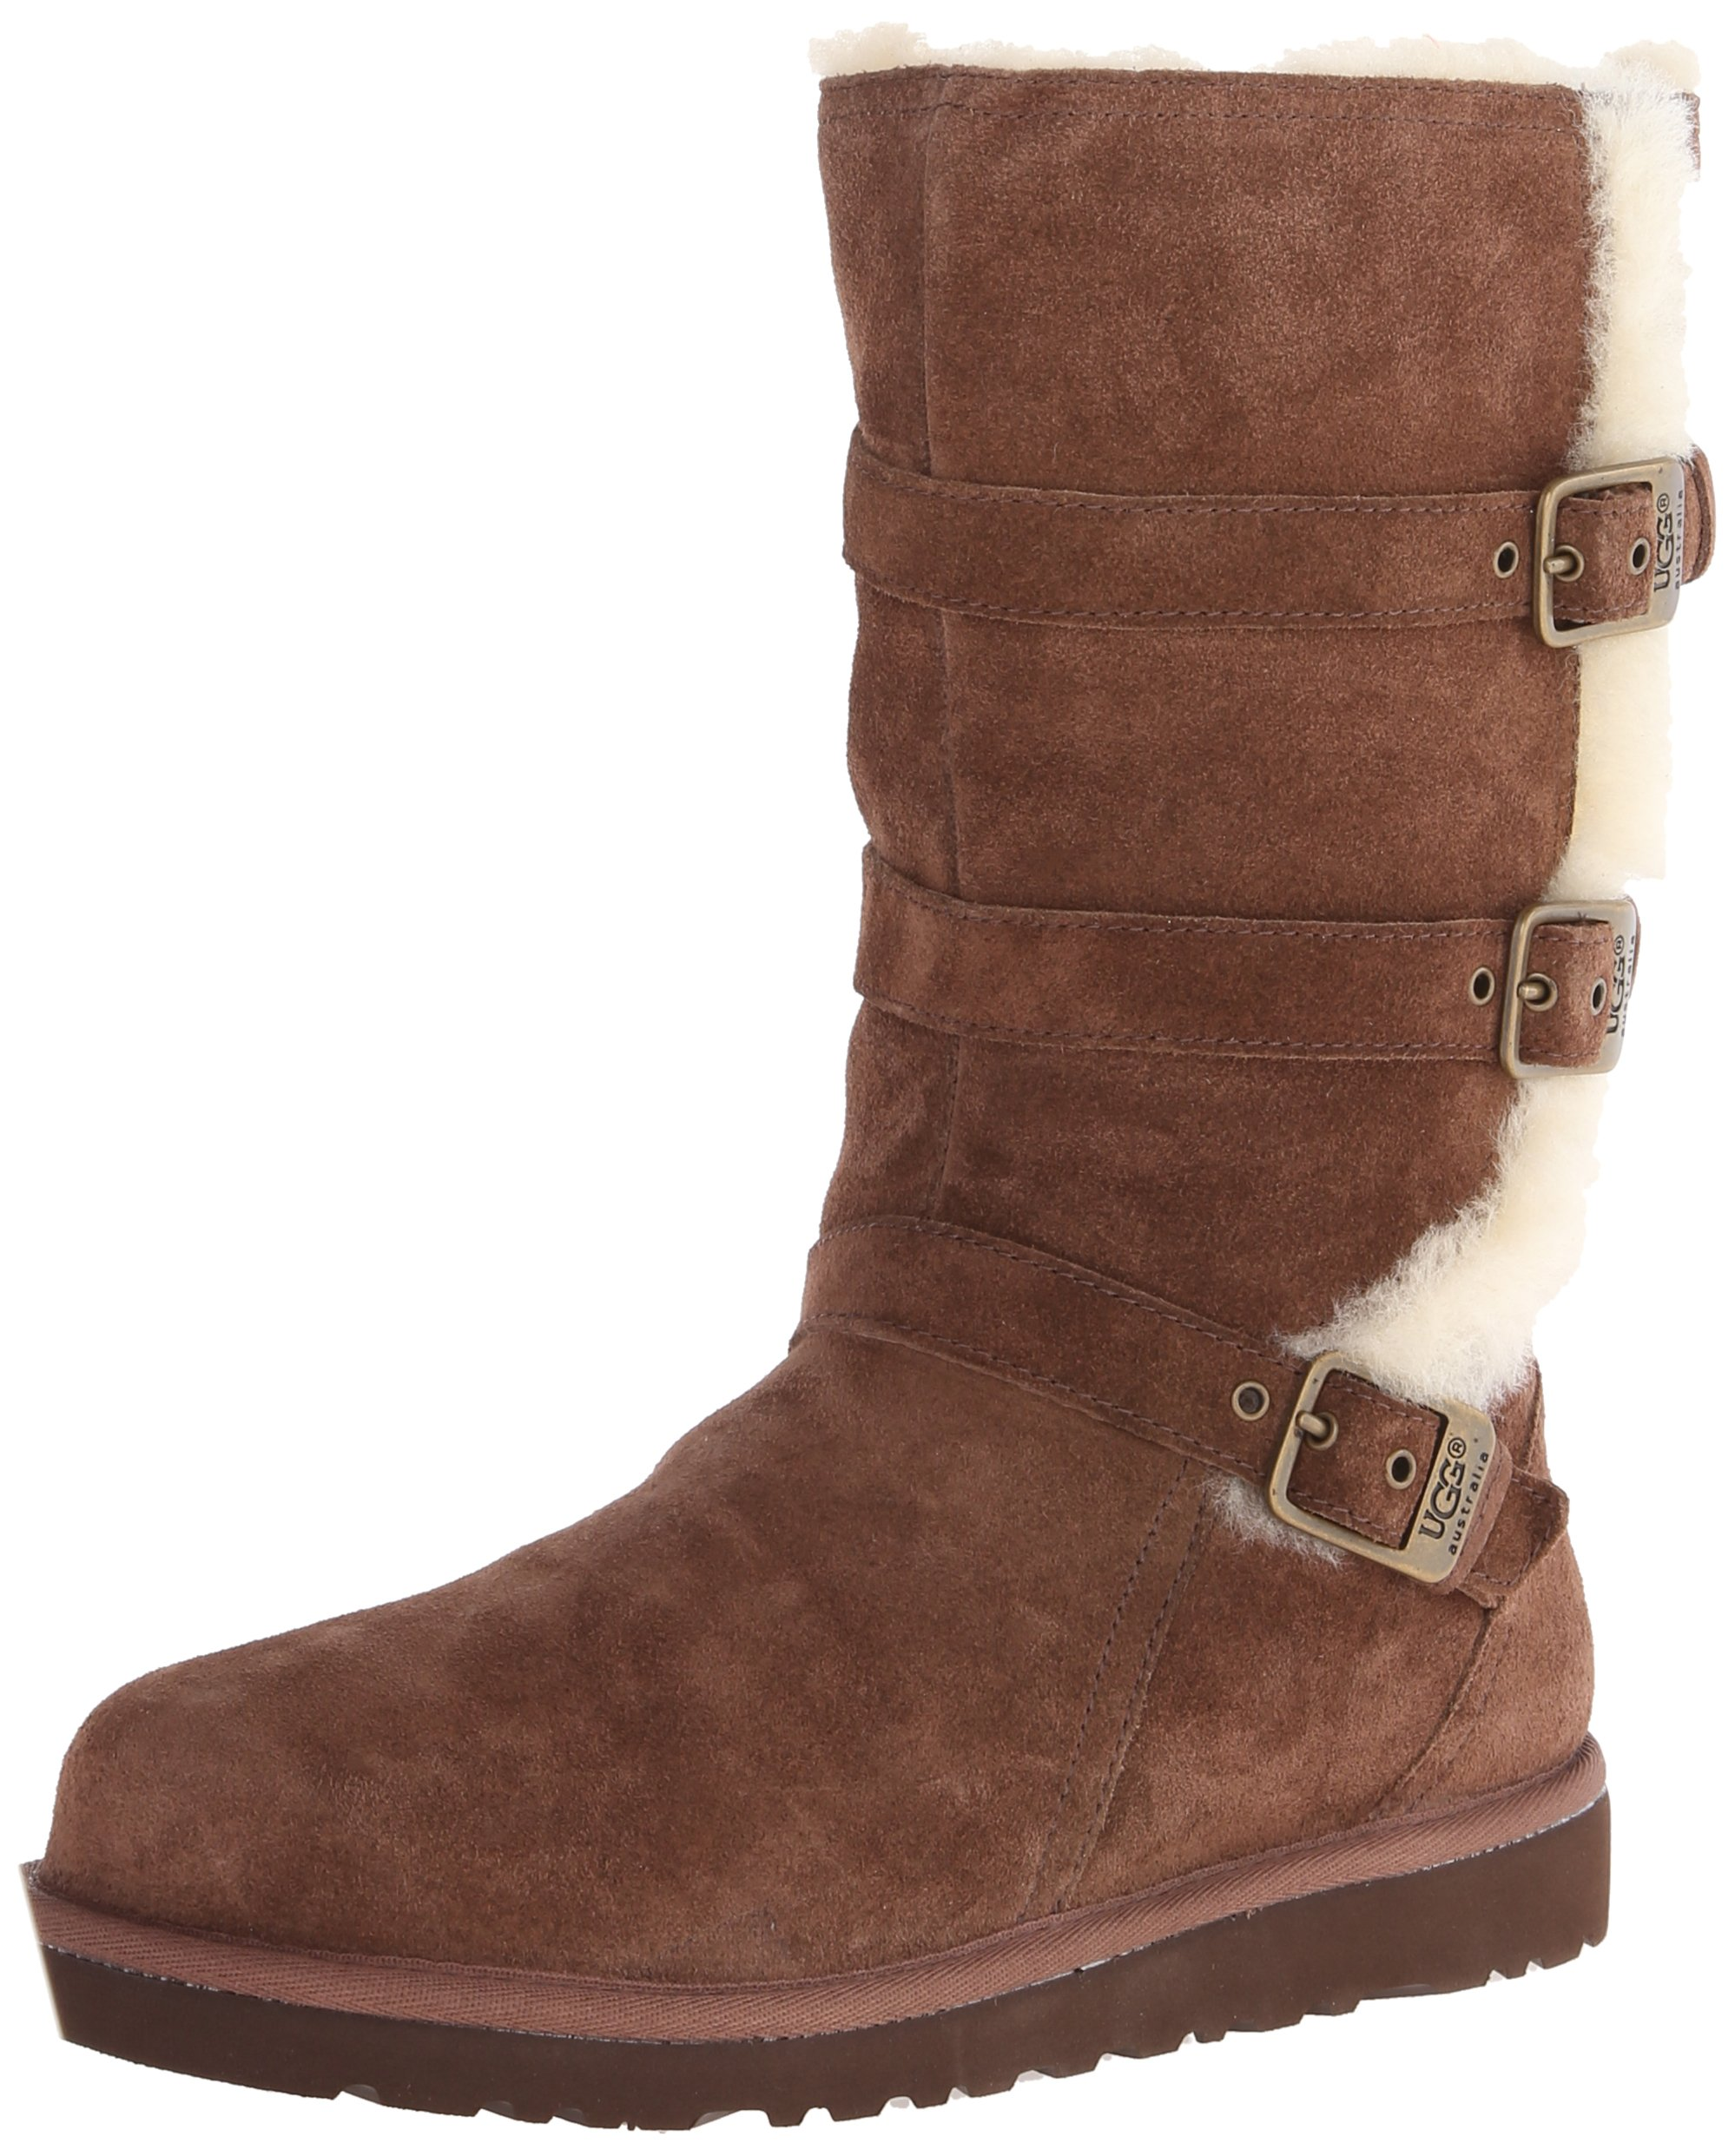 UGG Australia Girls Maddi Chocolate Western Boot - 5 by UGG